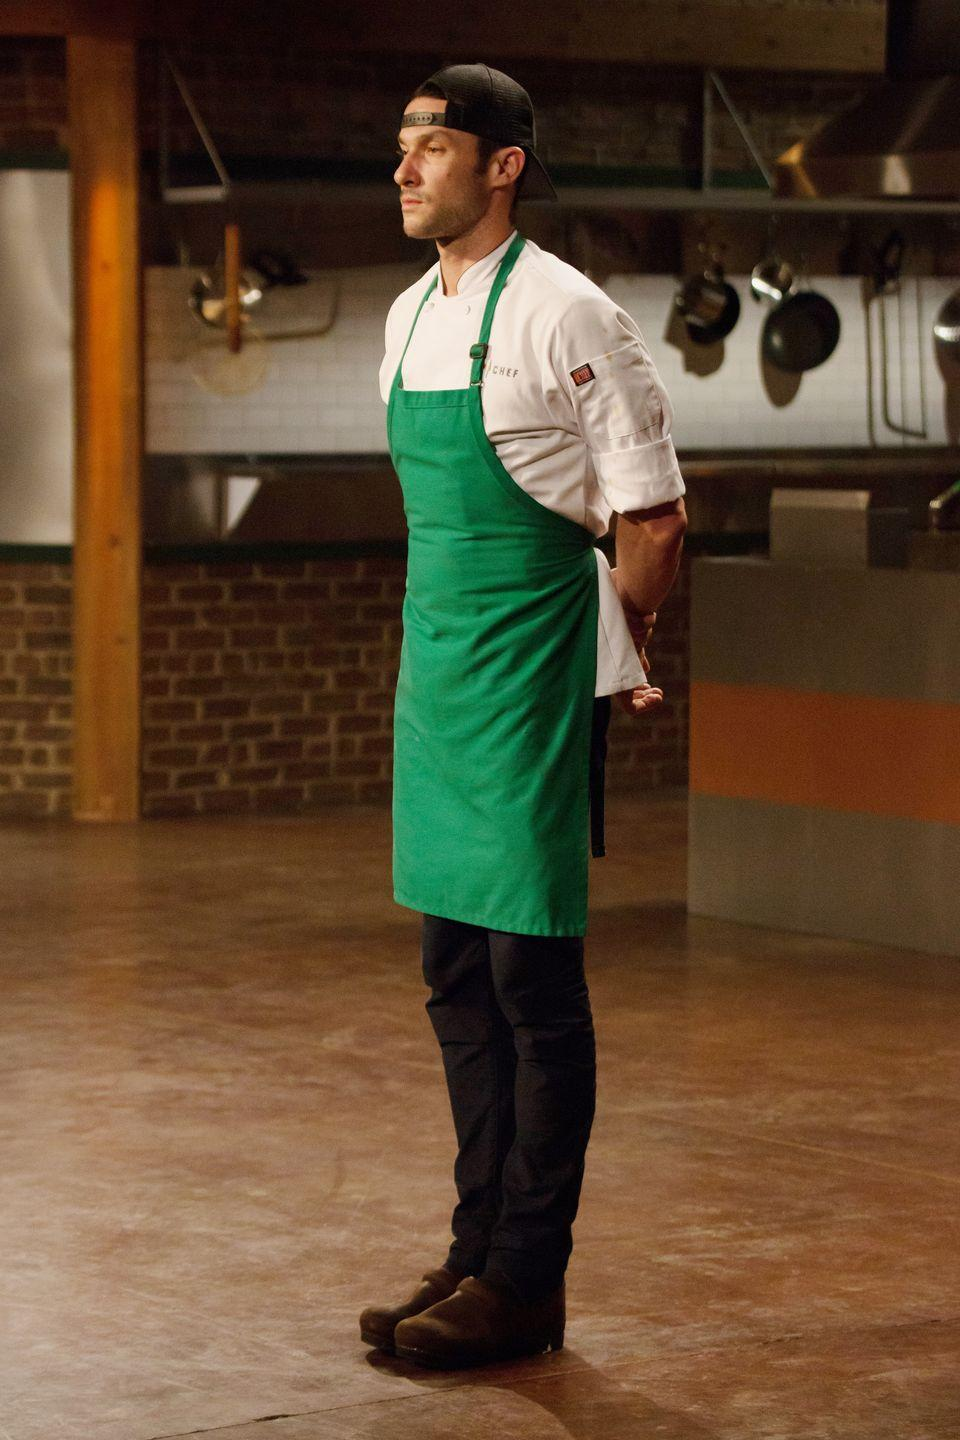 <p>Sam Talbot earned third place on <em>Top Chef</em>'s second season. During the season, the American chef's vulnerability in sharing his personal battle with Type 1 Diabetes helped him connect with fans and he was voted fan favorite by the public. </p>